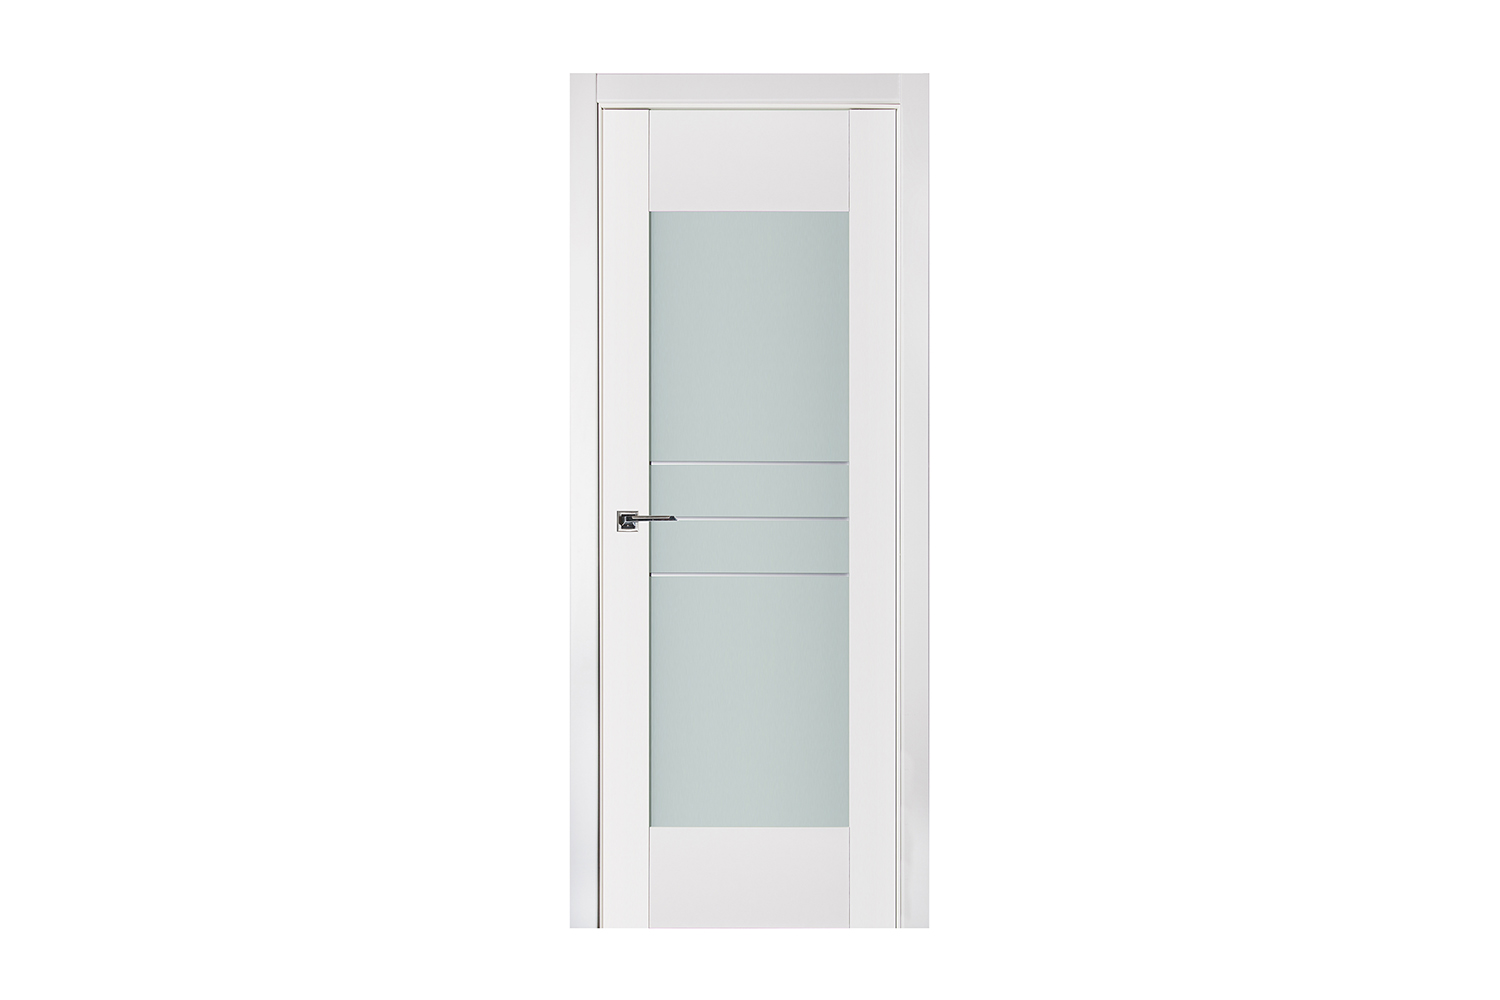 Triplex 052 White Wood Lacquered Modern Interior Door  sc 1 st  Nova Hardware & Triplex 052 White Wood Lacquered Modern Interior Door \u2013 Nova ...